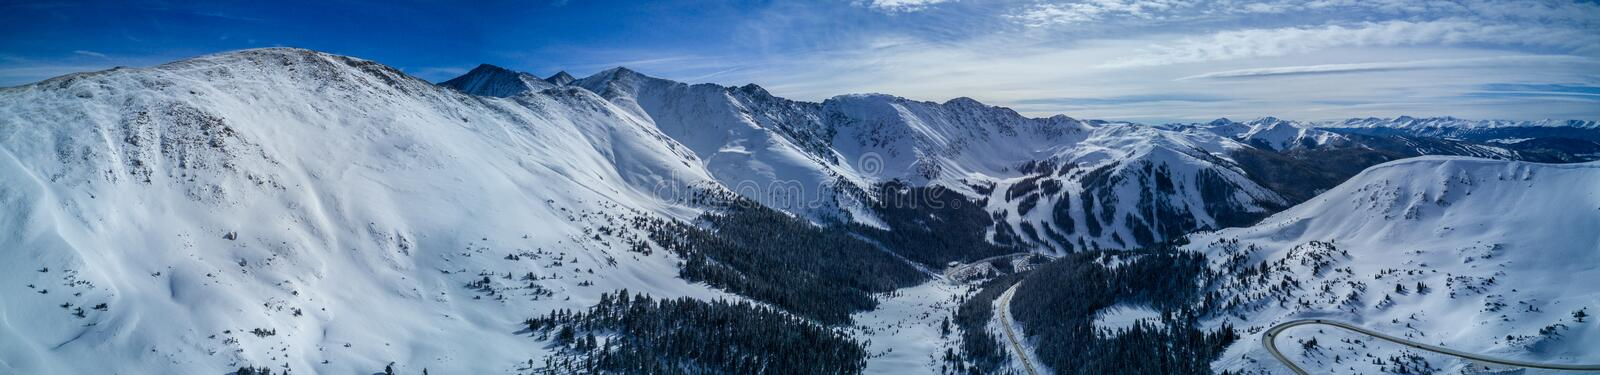 Aerial Drone Panorama Photo - Colorado Rocky Mountains after a fresh winter storm. Beautiful Drone photograph of the Colorado Rocky Mountains after a fresh dump stock image